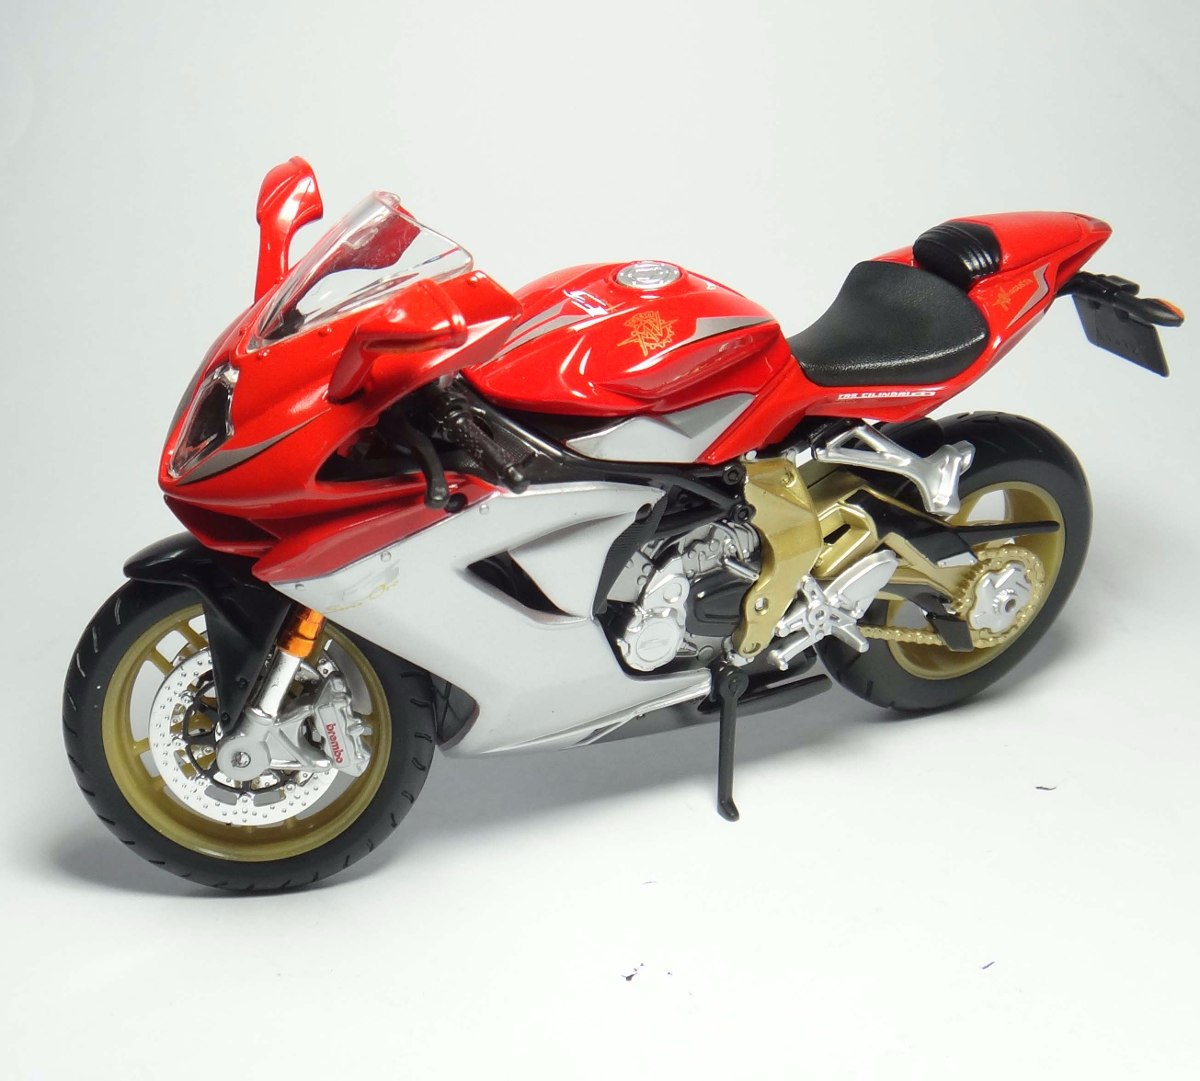 MV Agusta F3 Serie Oro 2012 images #114368